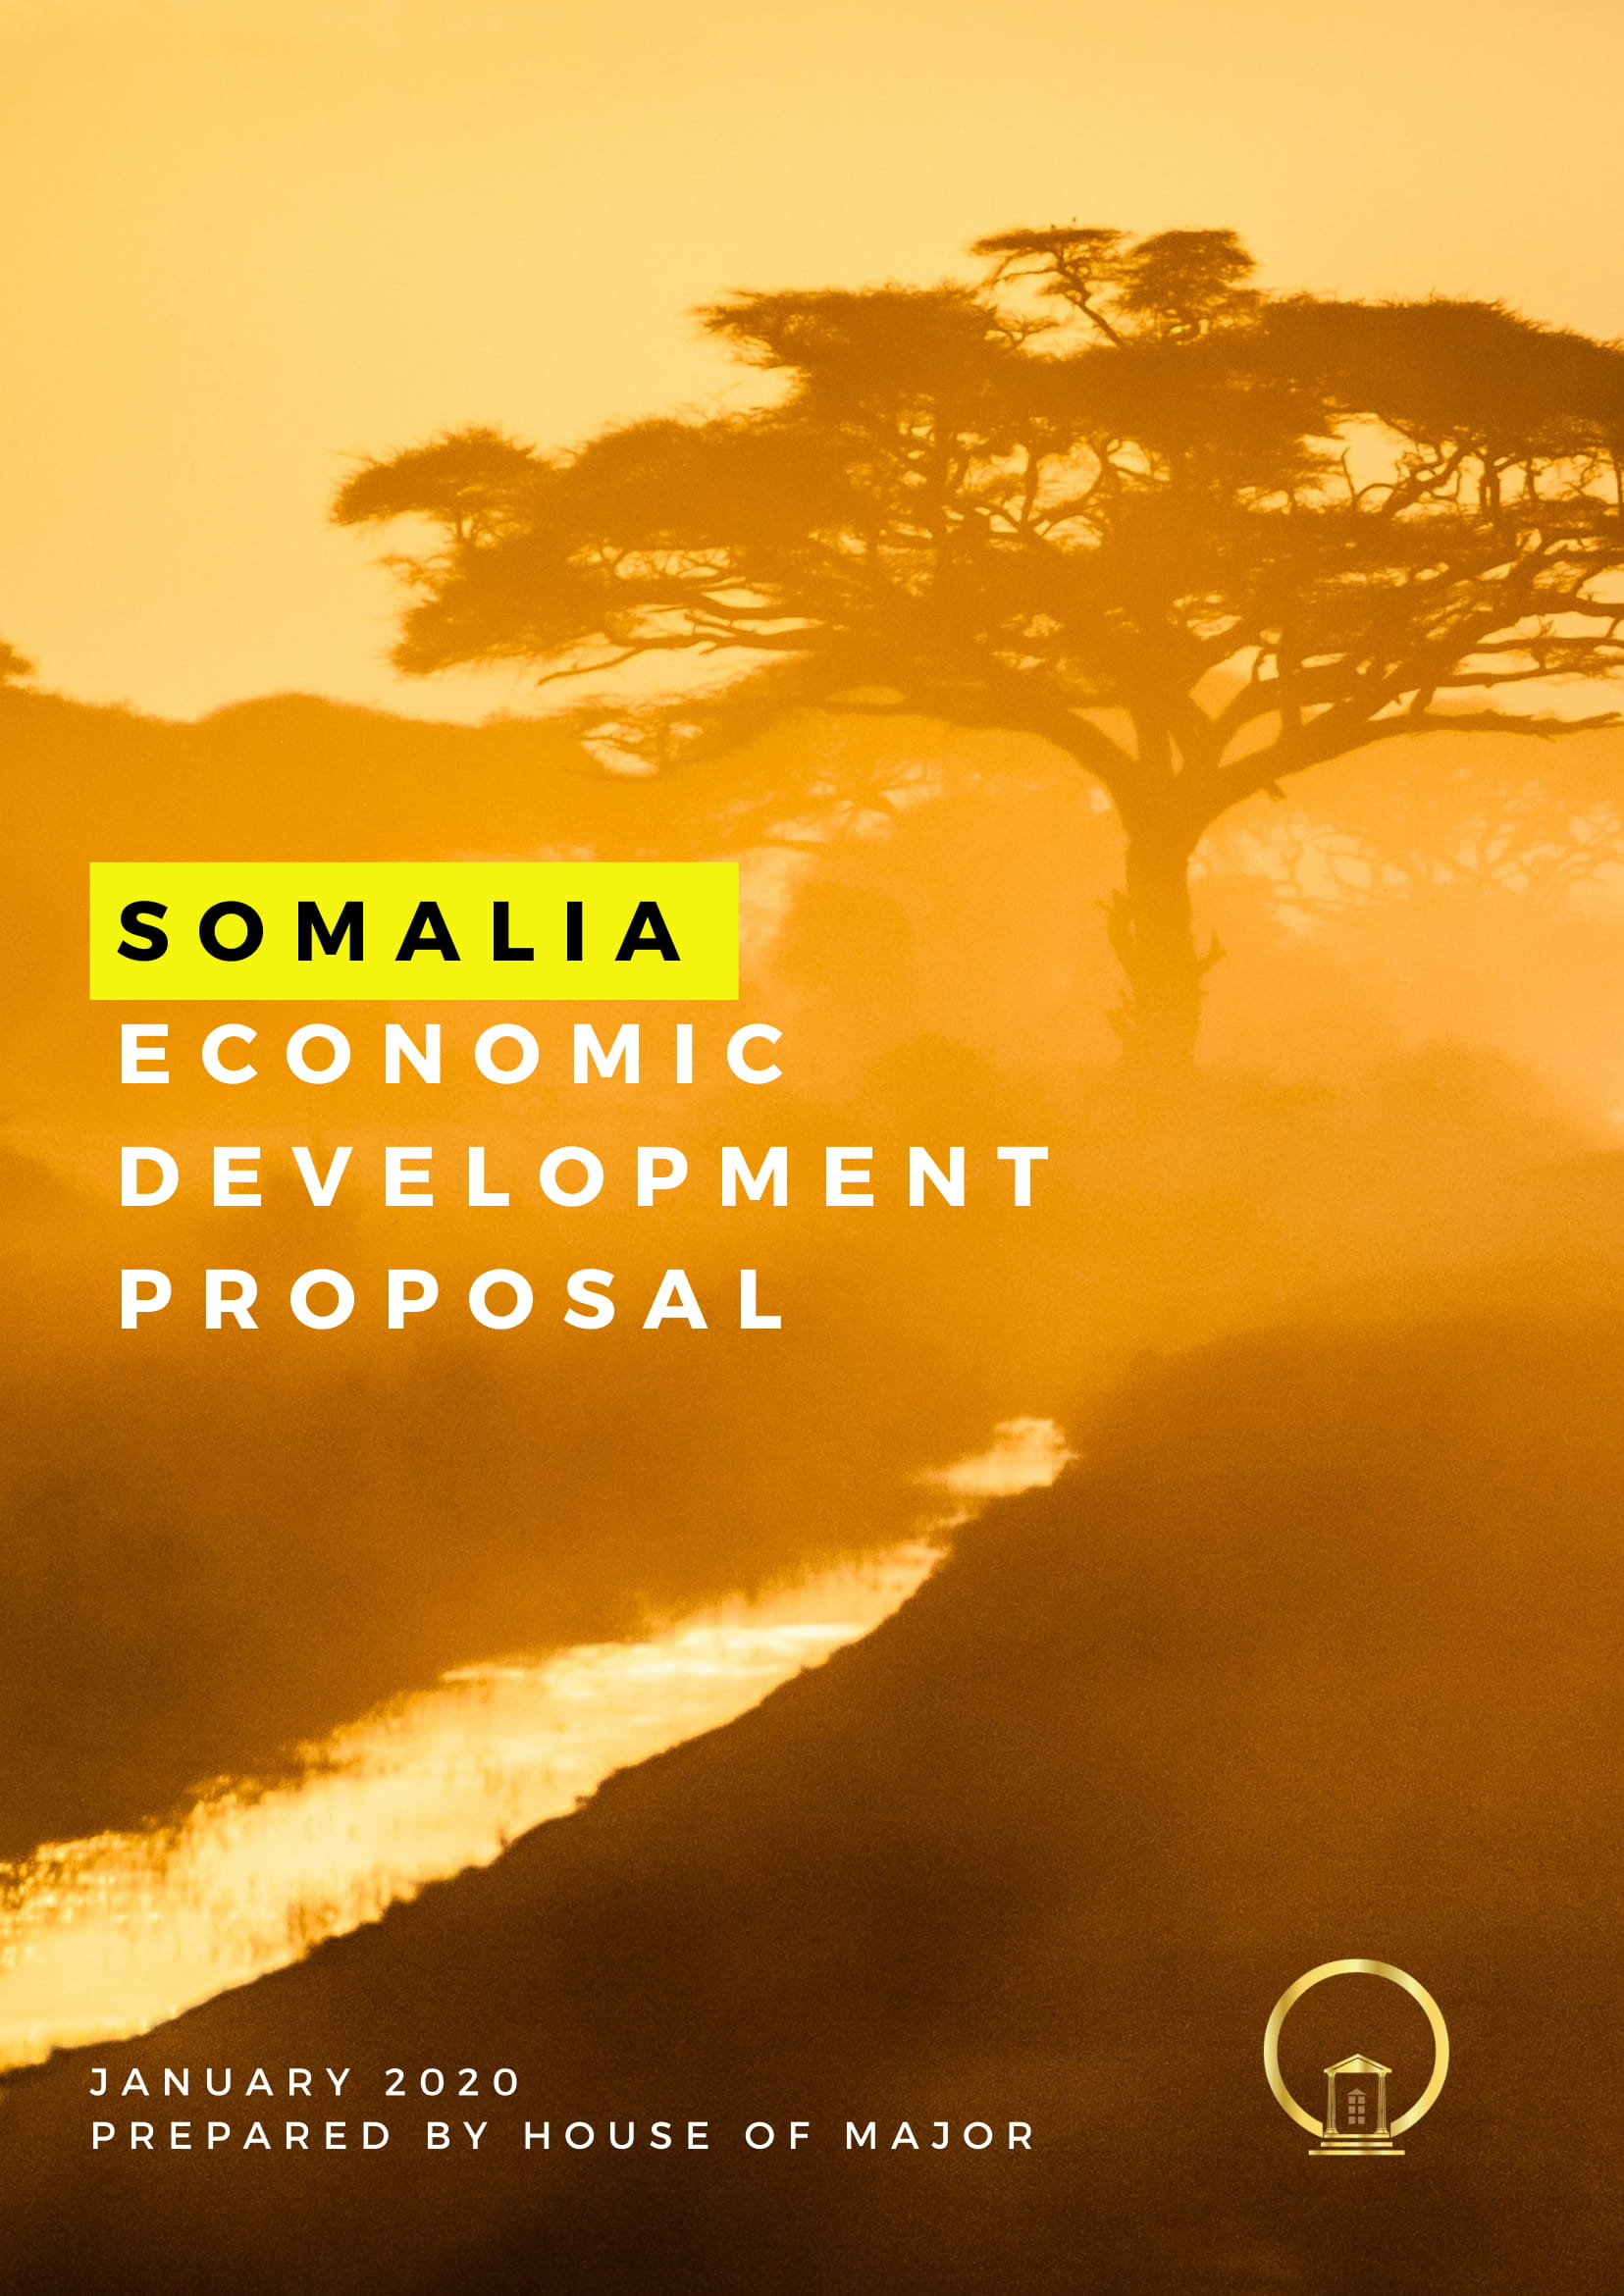 SOMALIA ECONOMIC DEVELOPMENT PROPOSAL-1